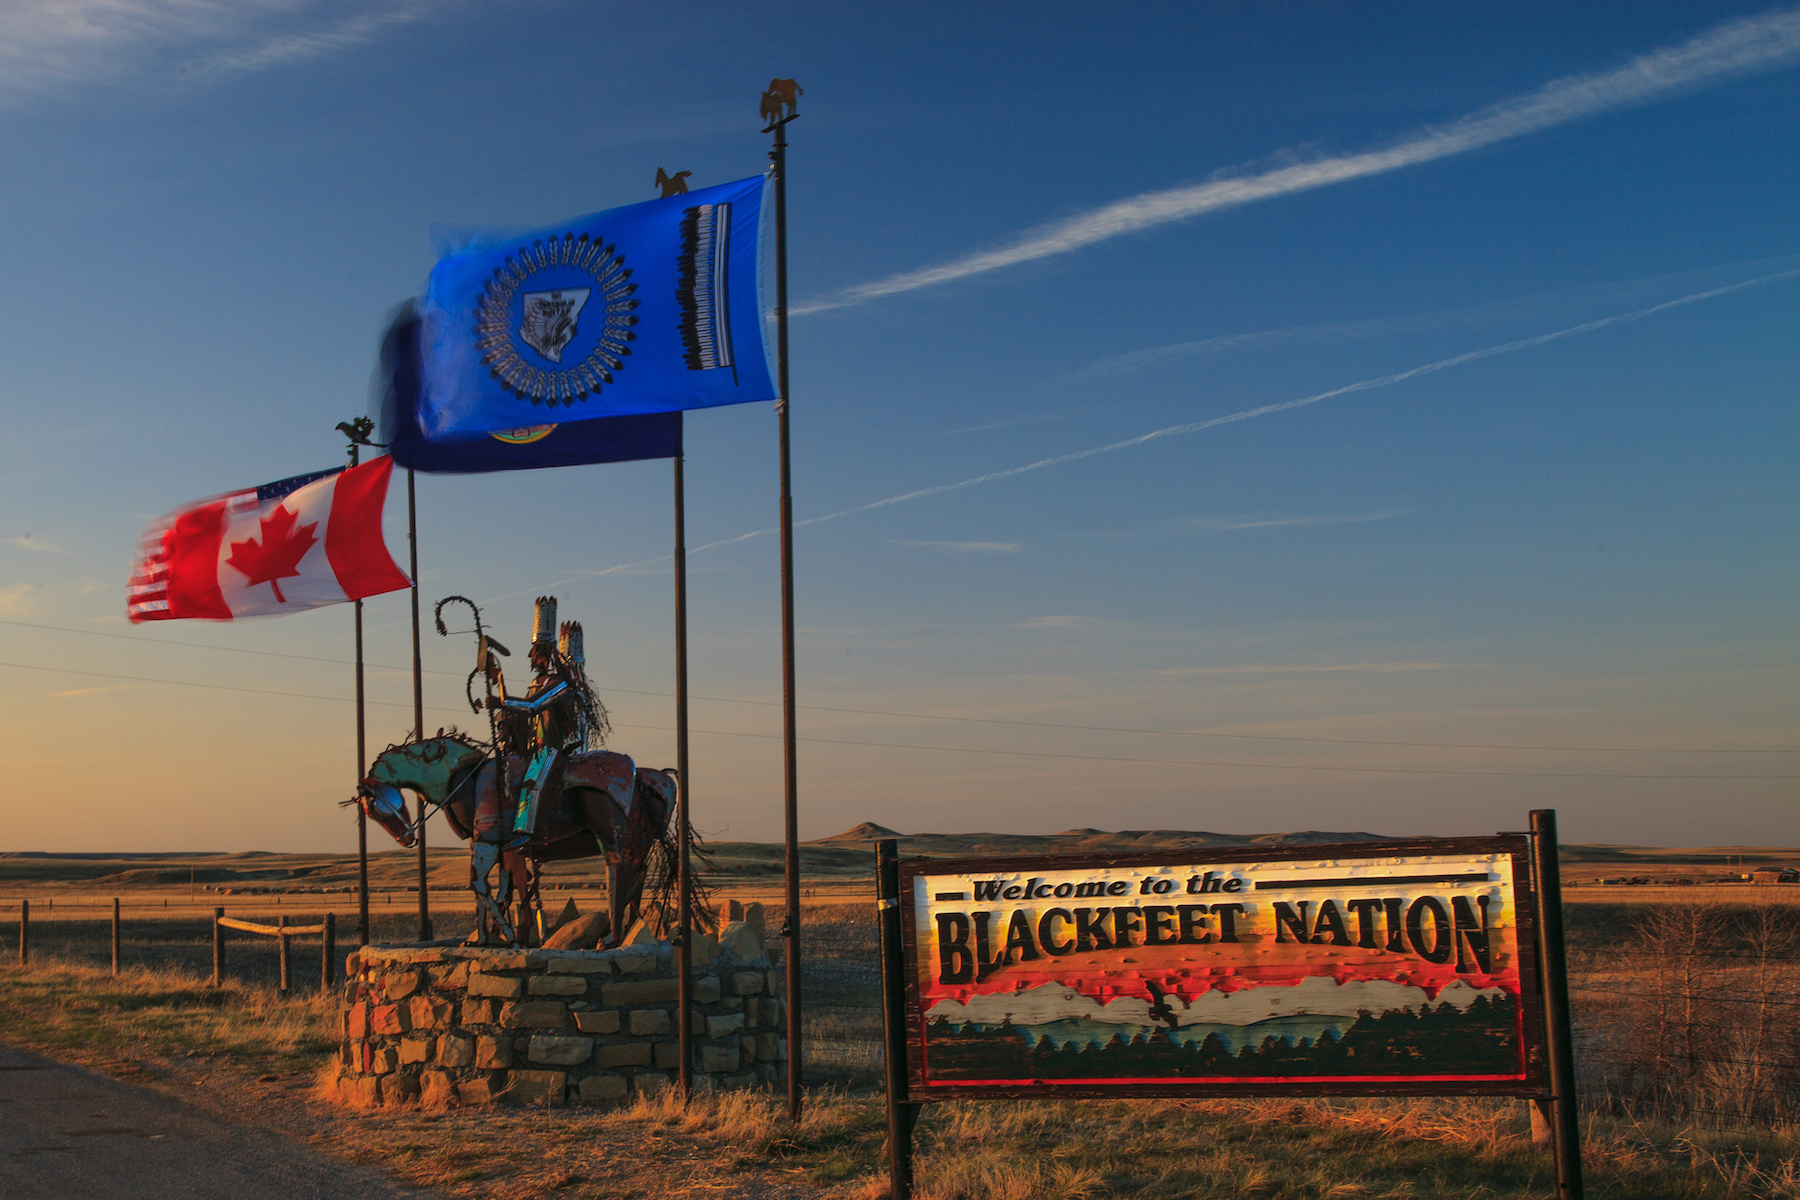 Michael Dax: Blackfeet Nation scores victory in sacred land fight